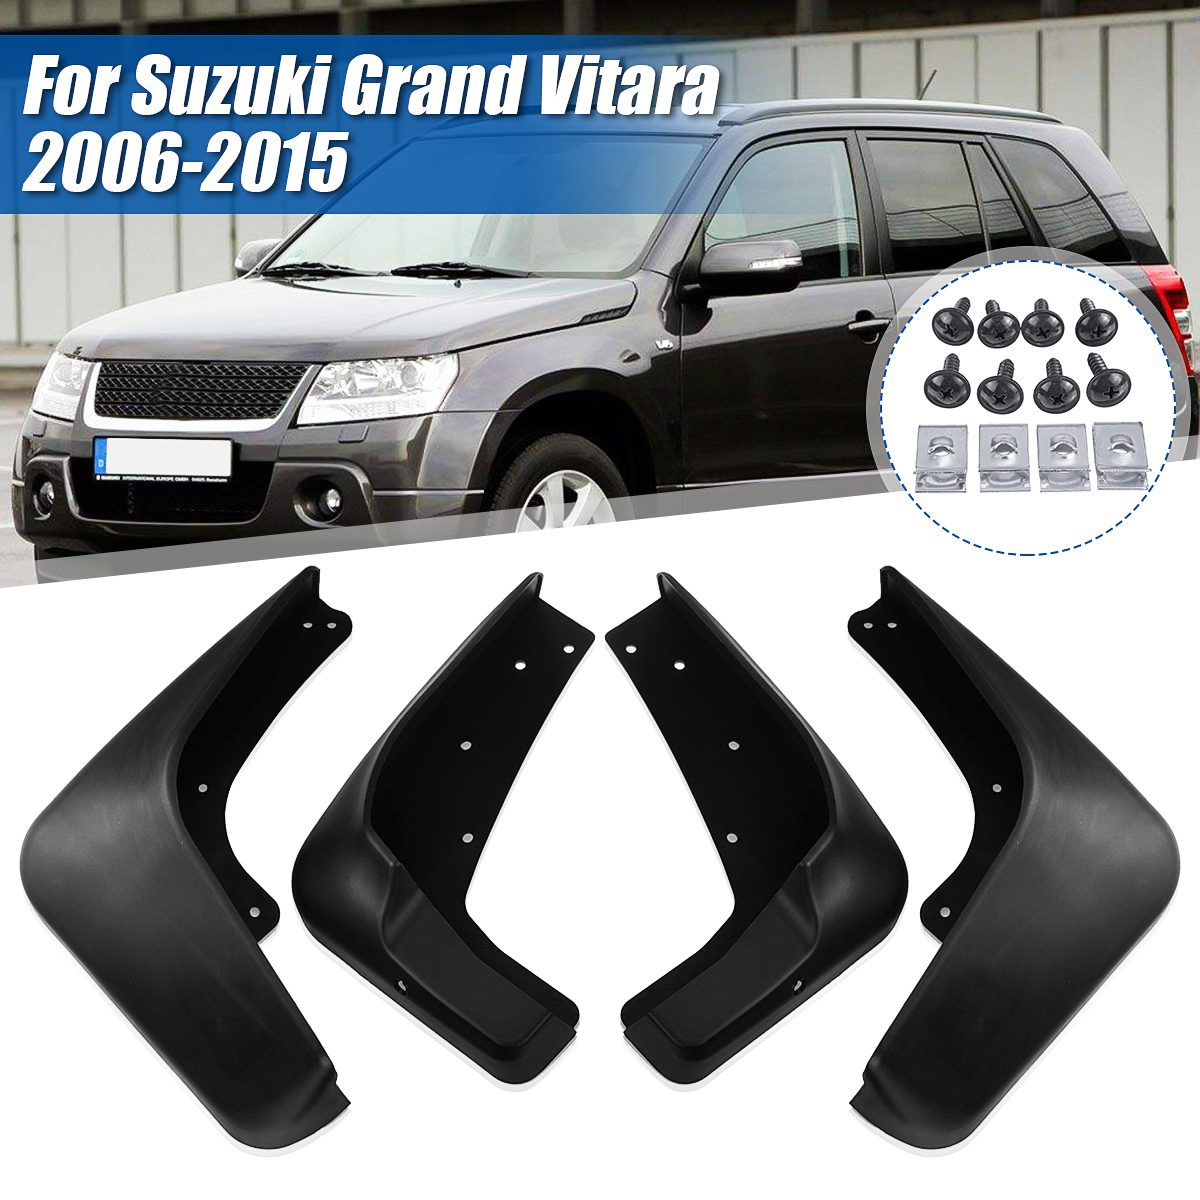 Car Custom Mud Flaps Splash Guards for Suzuki Grand Vitara 2006-2013 2016-2018 Fender Flares Mudflaps Mudguards Front and Rear Wheel 4Pcs